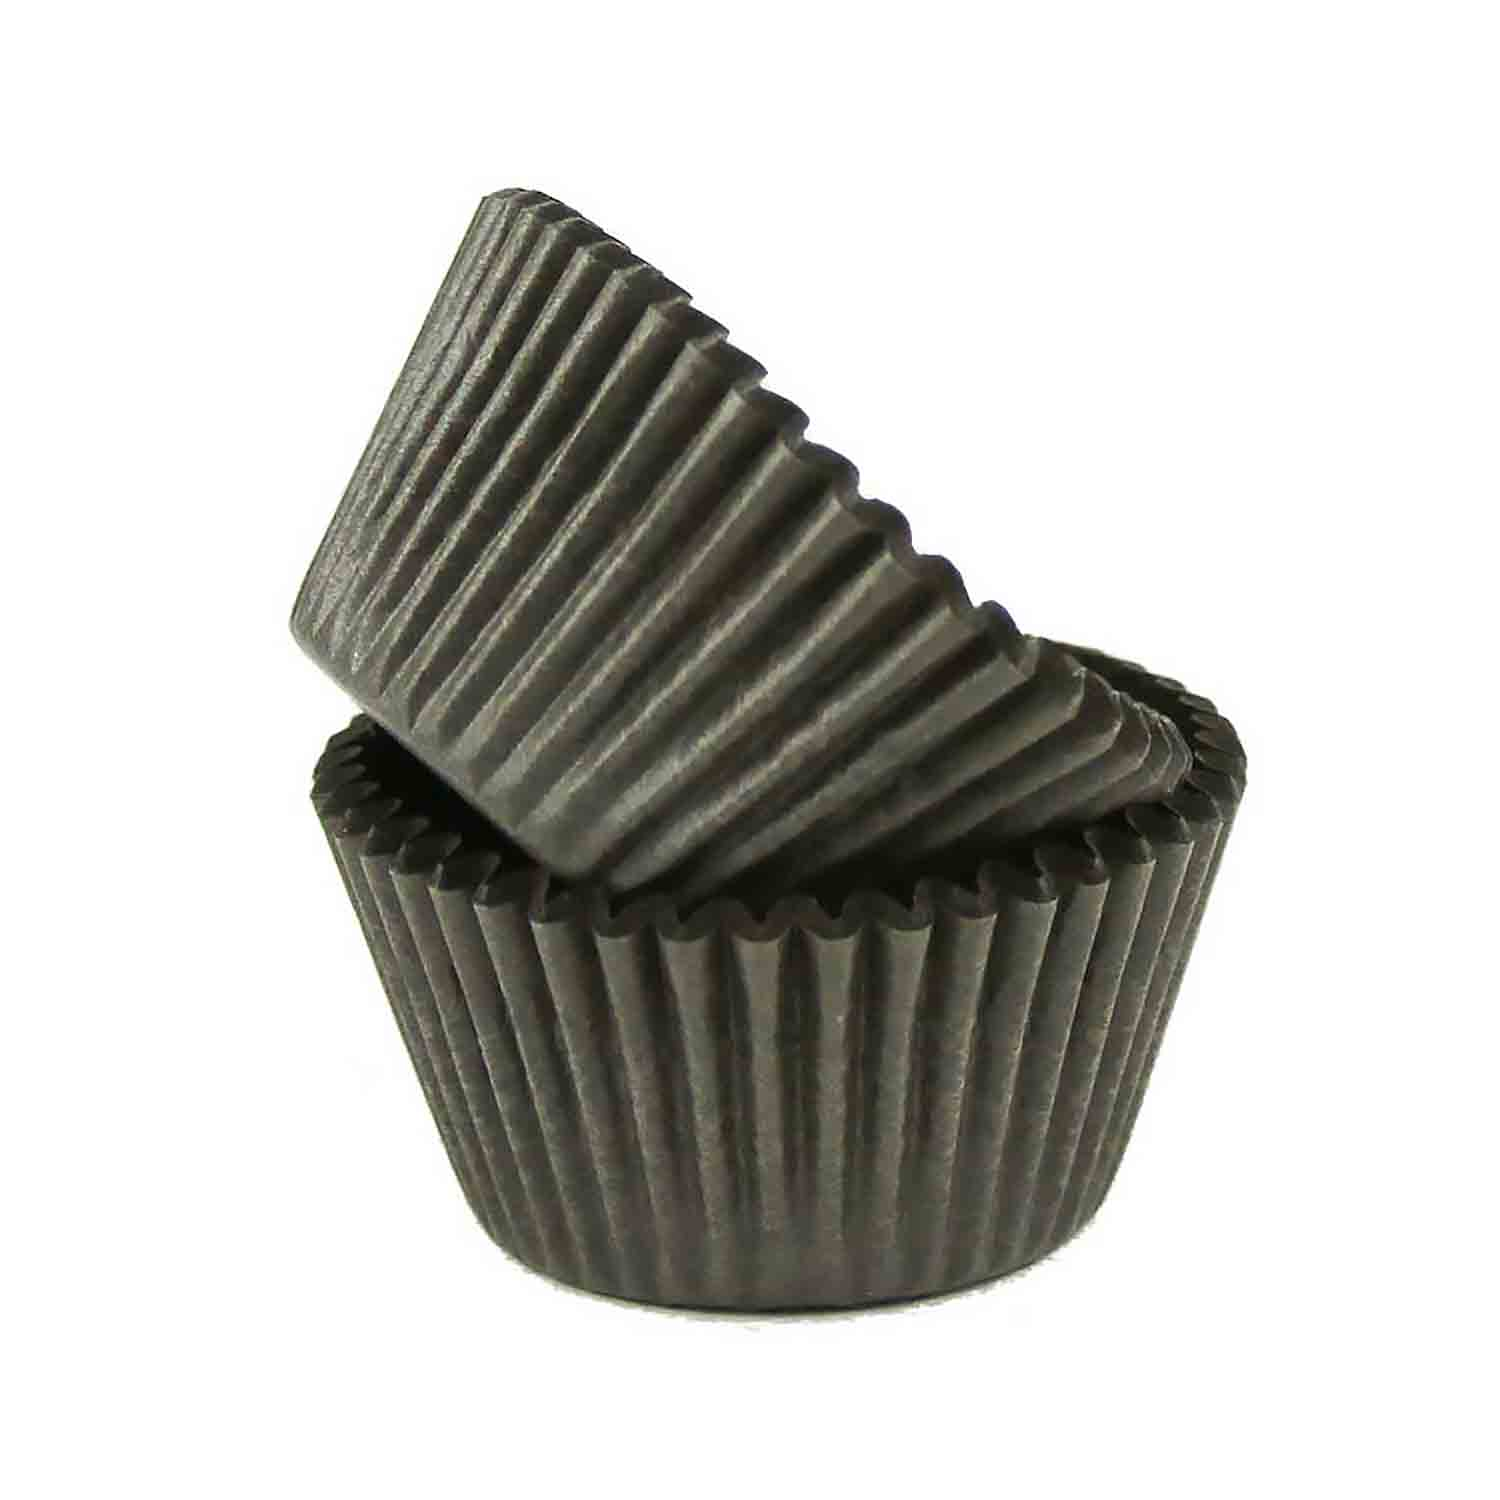 Brown Candy / Baking Cup #9